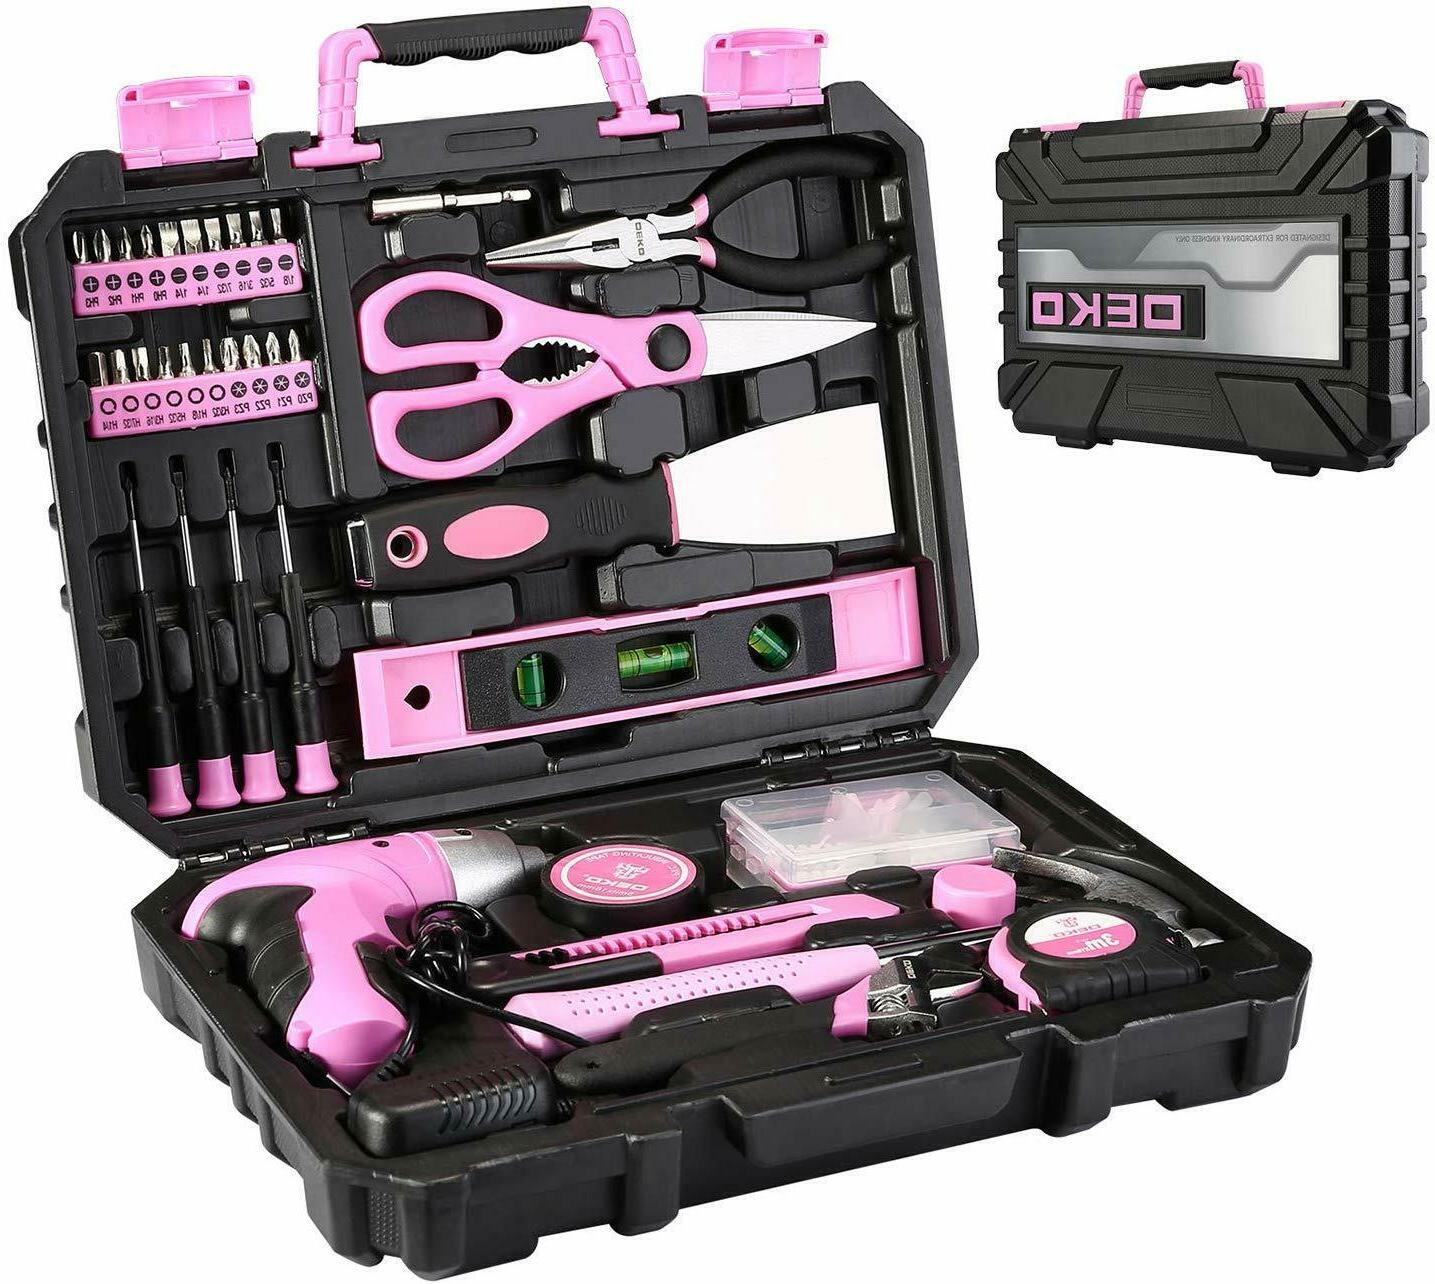 DEKO 98 PCS Pink Tool Set General Household Hand Tool Kit wi